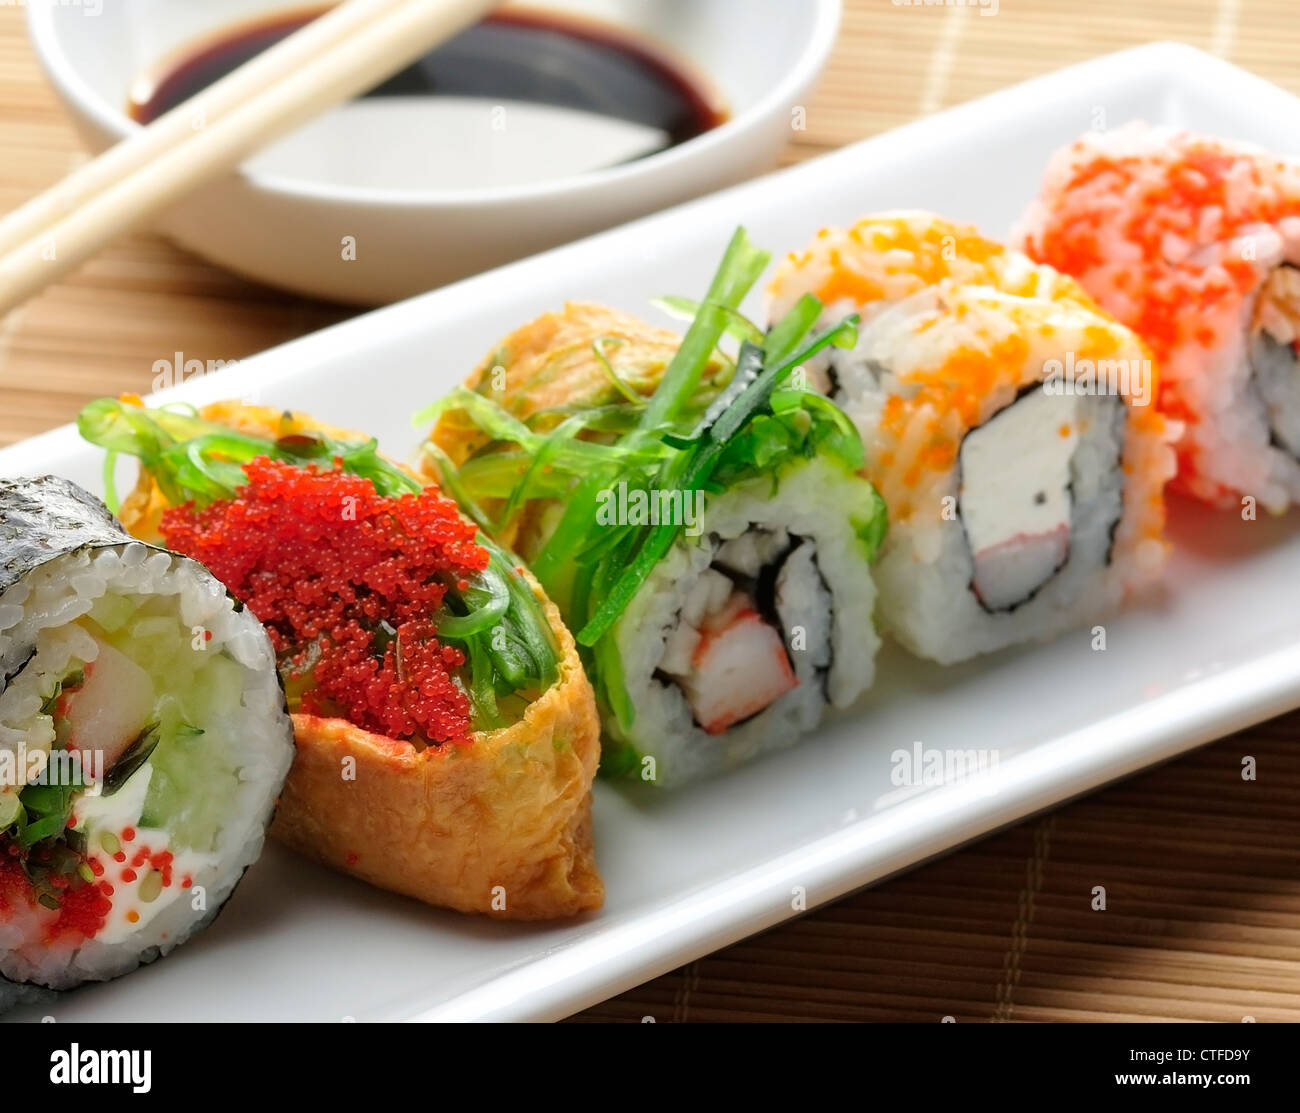 Sushi Assortment On White Dish, close up - Stock Image